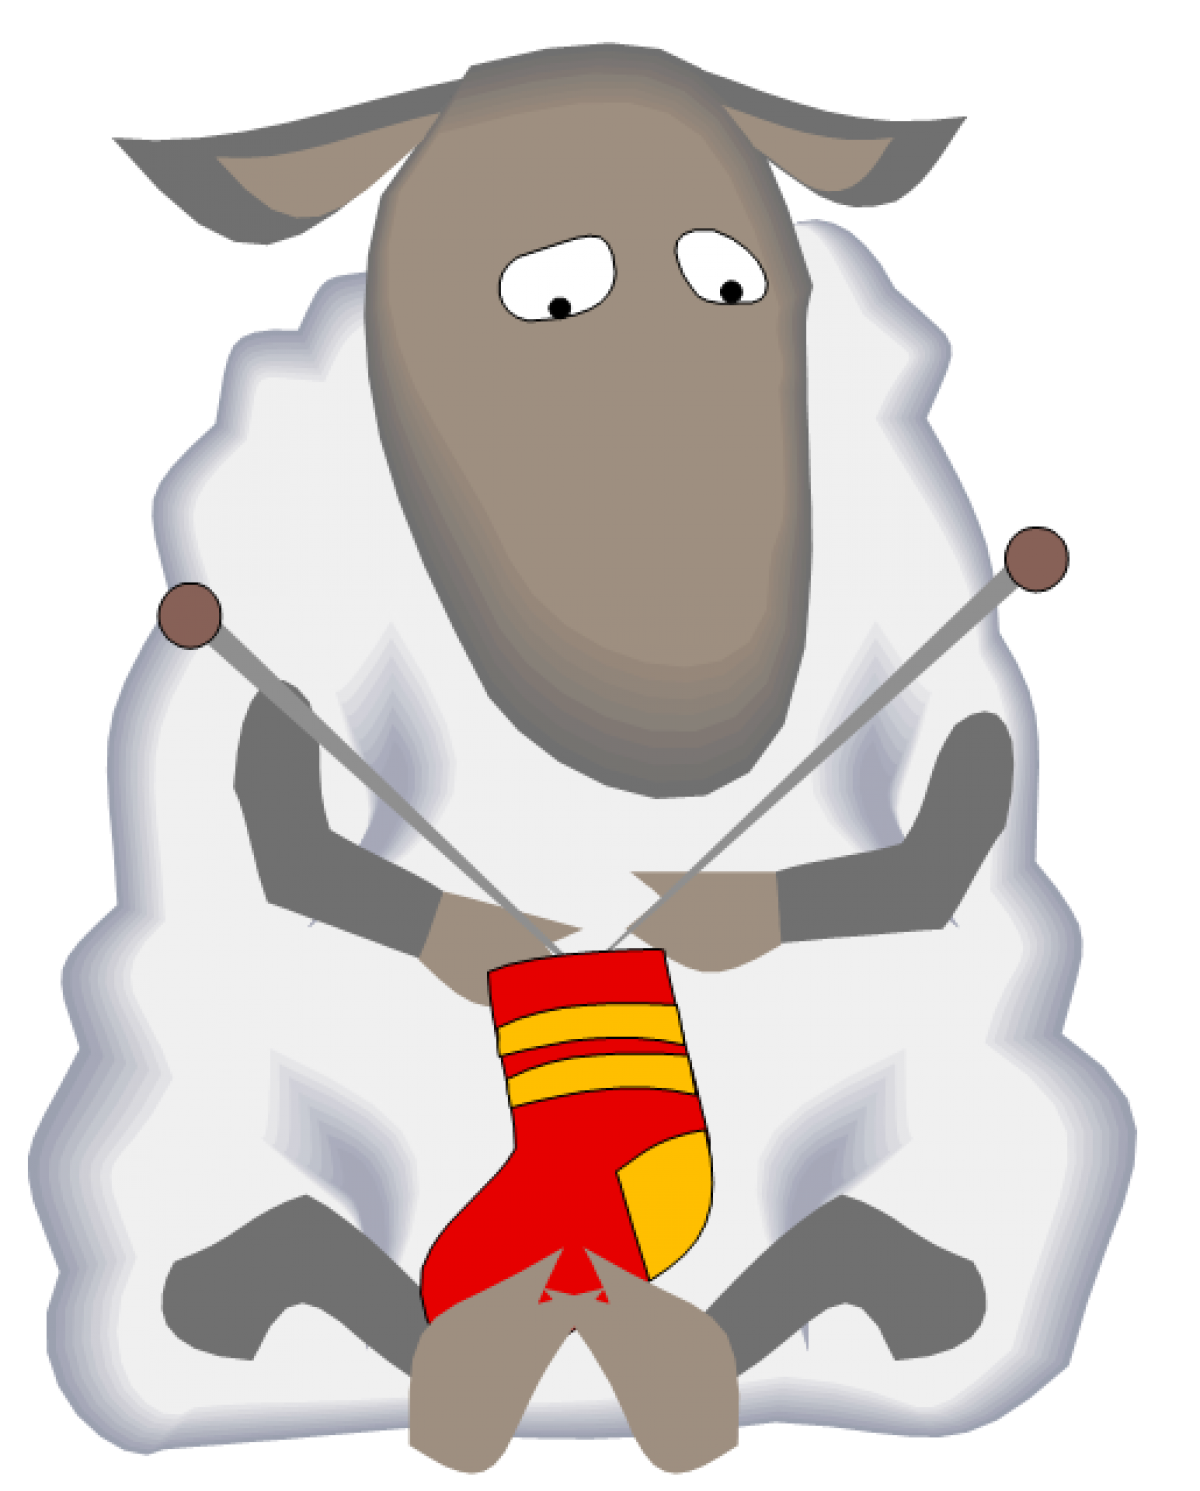 Clipart sheep knitting. Cropped flipped left to